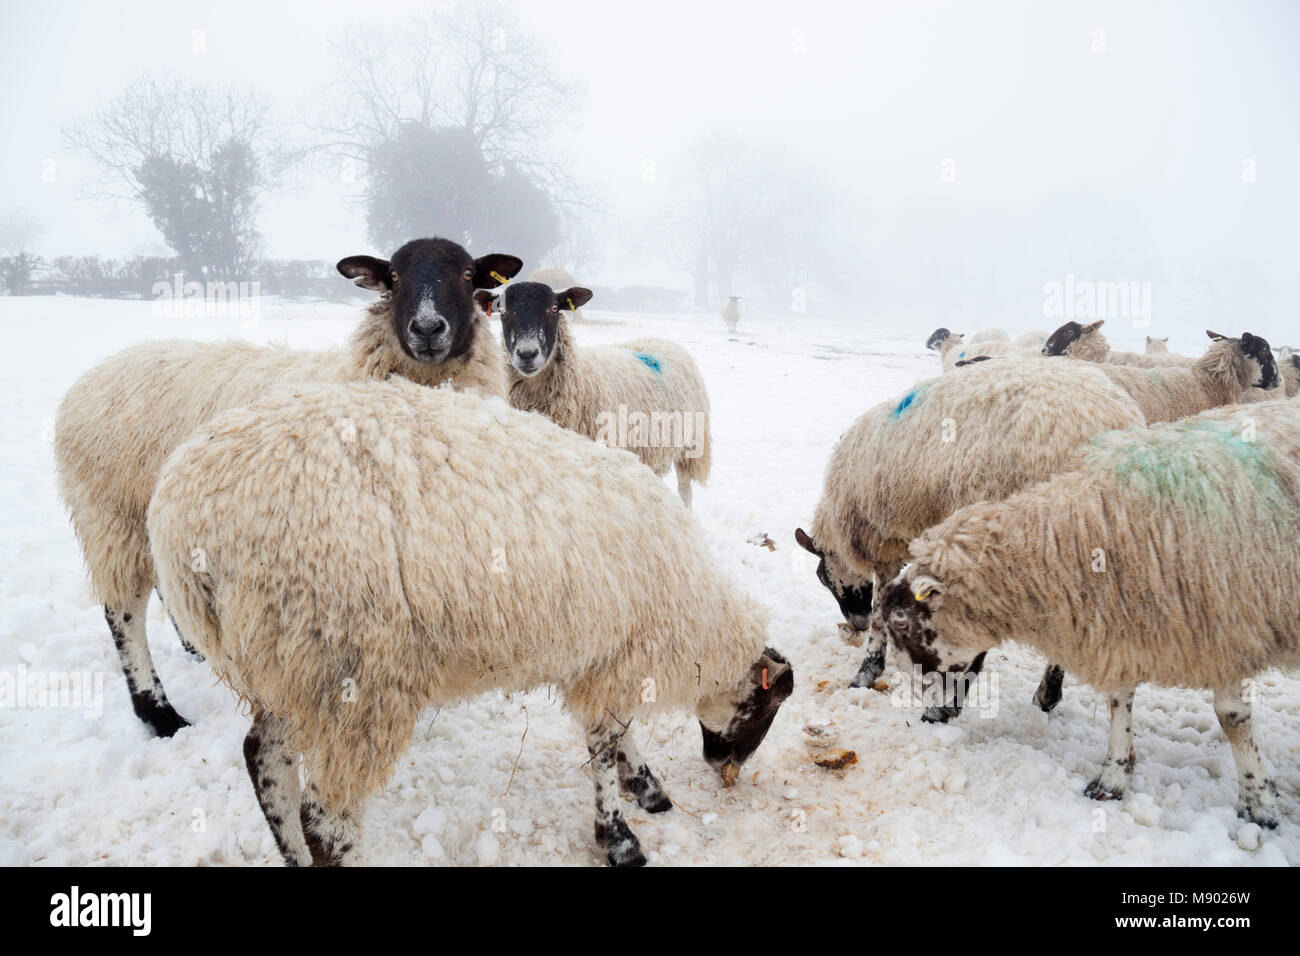 White sheep in snow and fog eating turnips, Chipping Campden, The Cotswolds, Gloucestershire, England, United Kingdom, - Stock Image